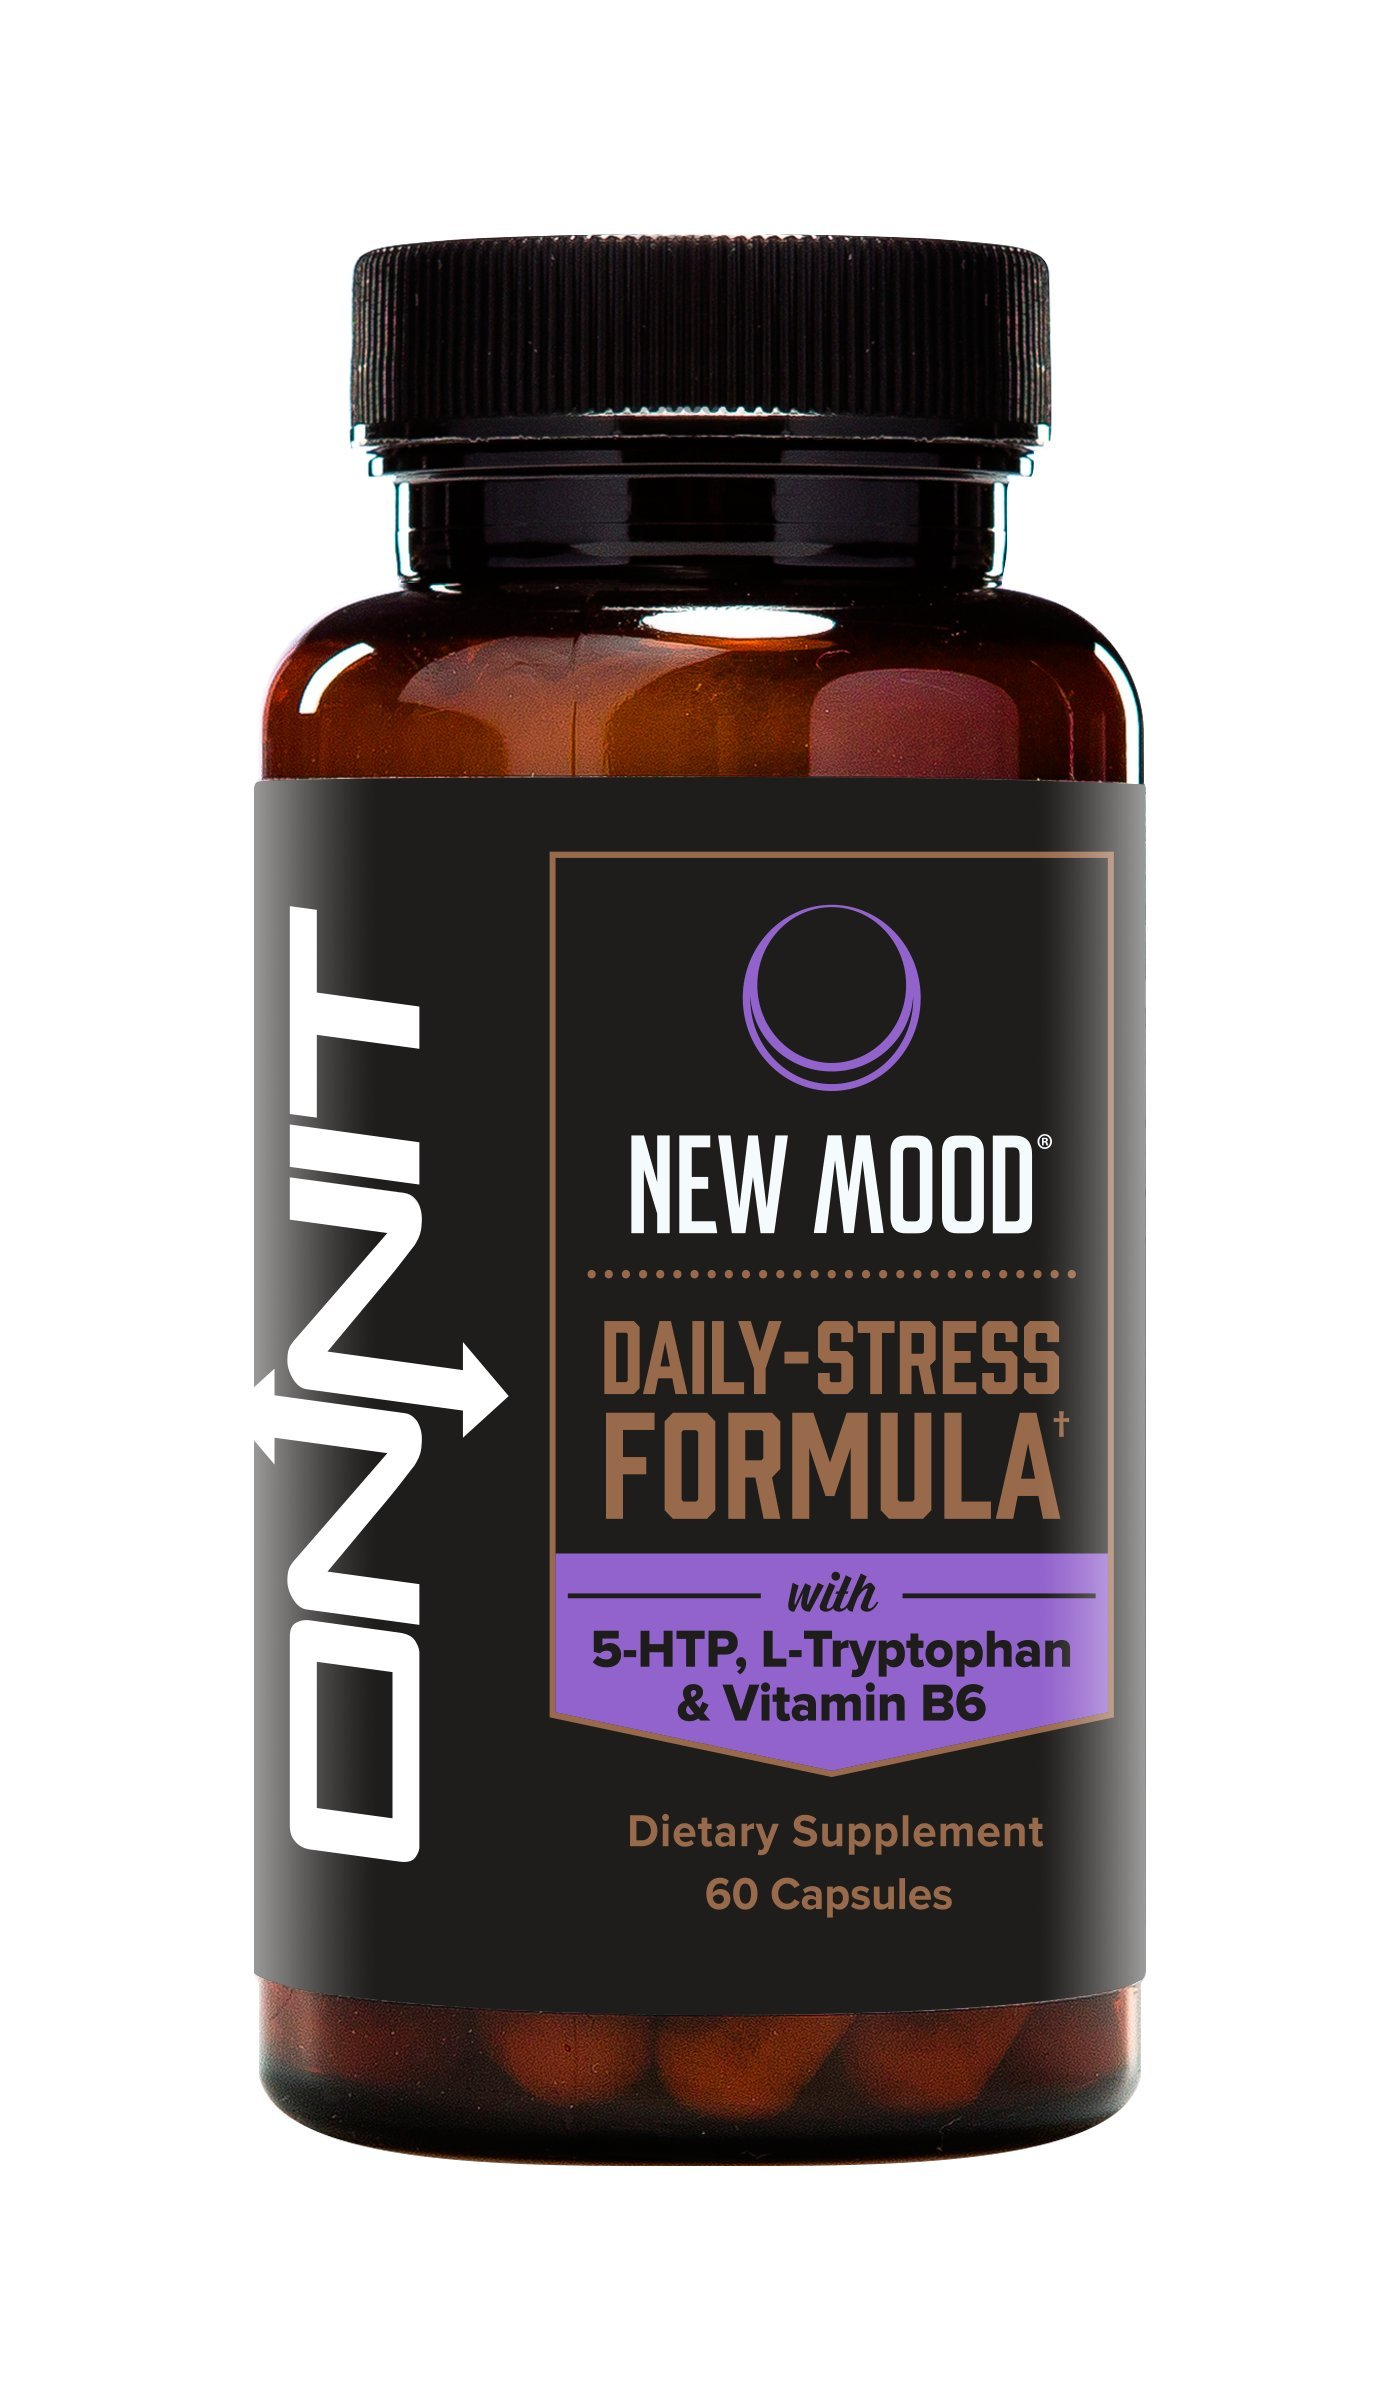 Onnit New Mood: Daily Stress, Mood, and Sleep Support Supplement (60ct)